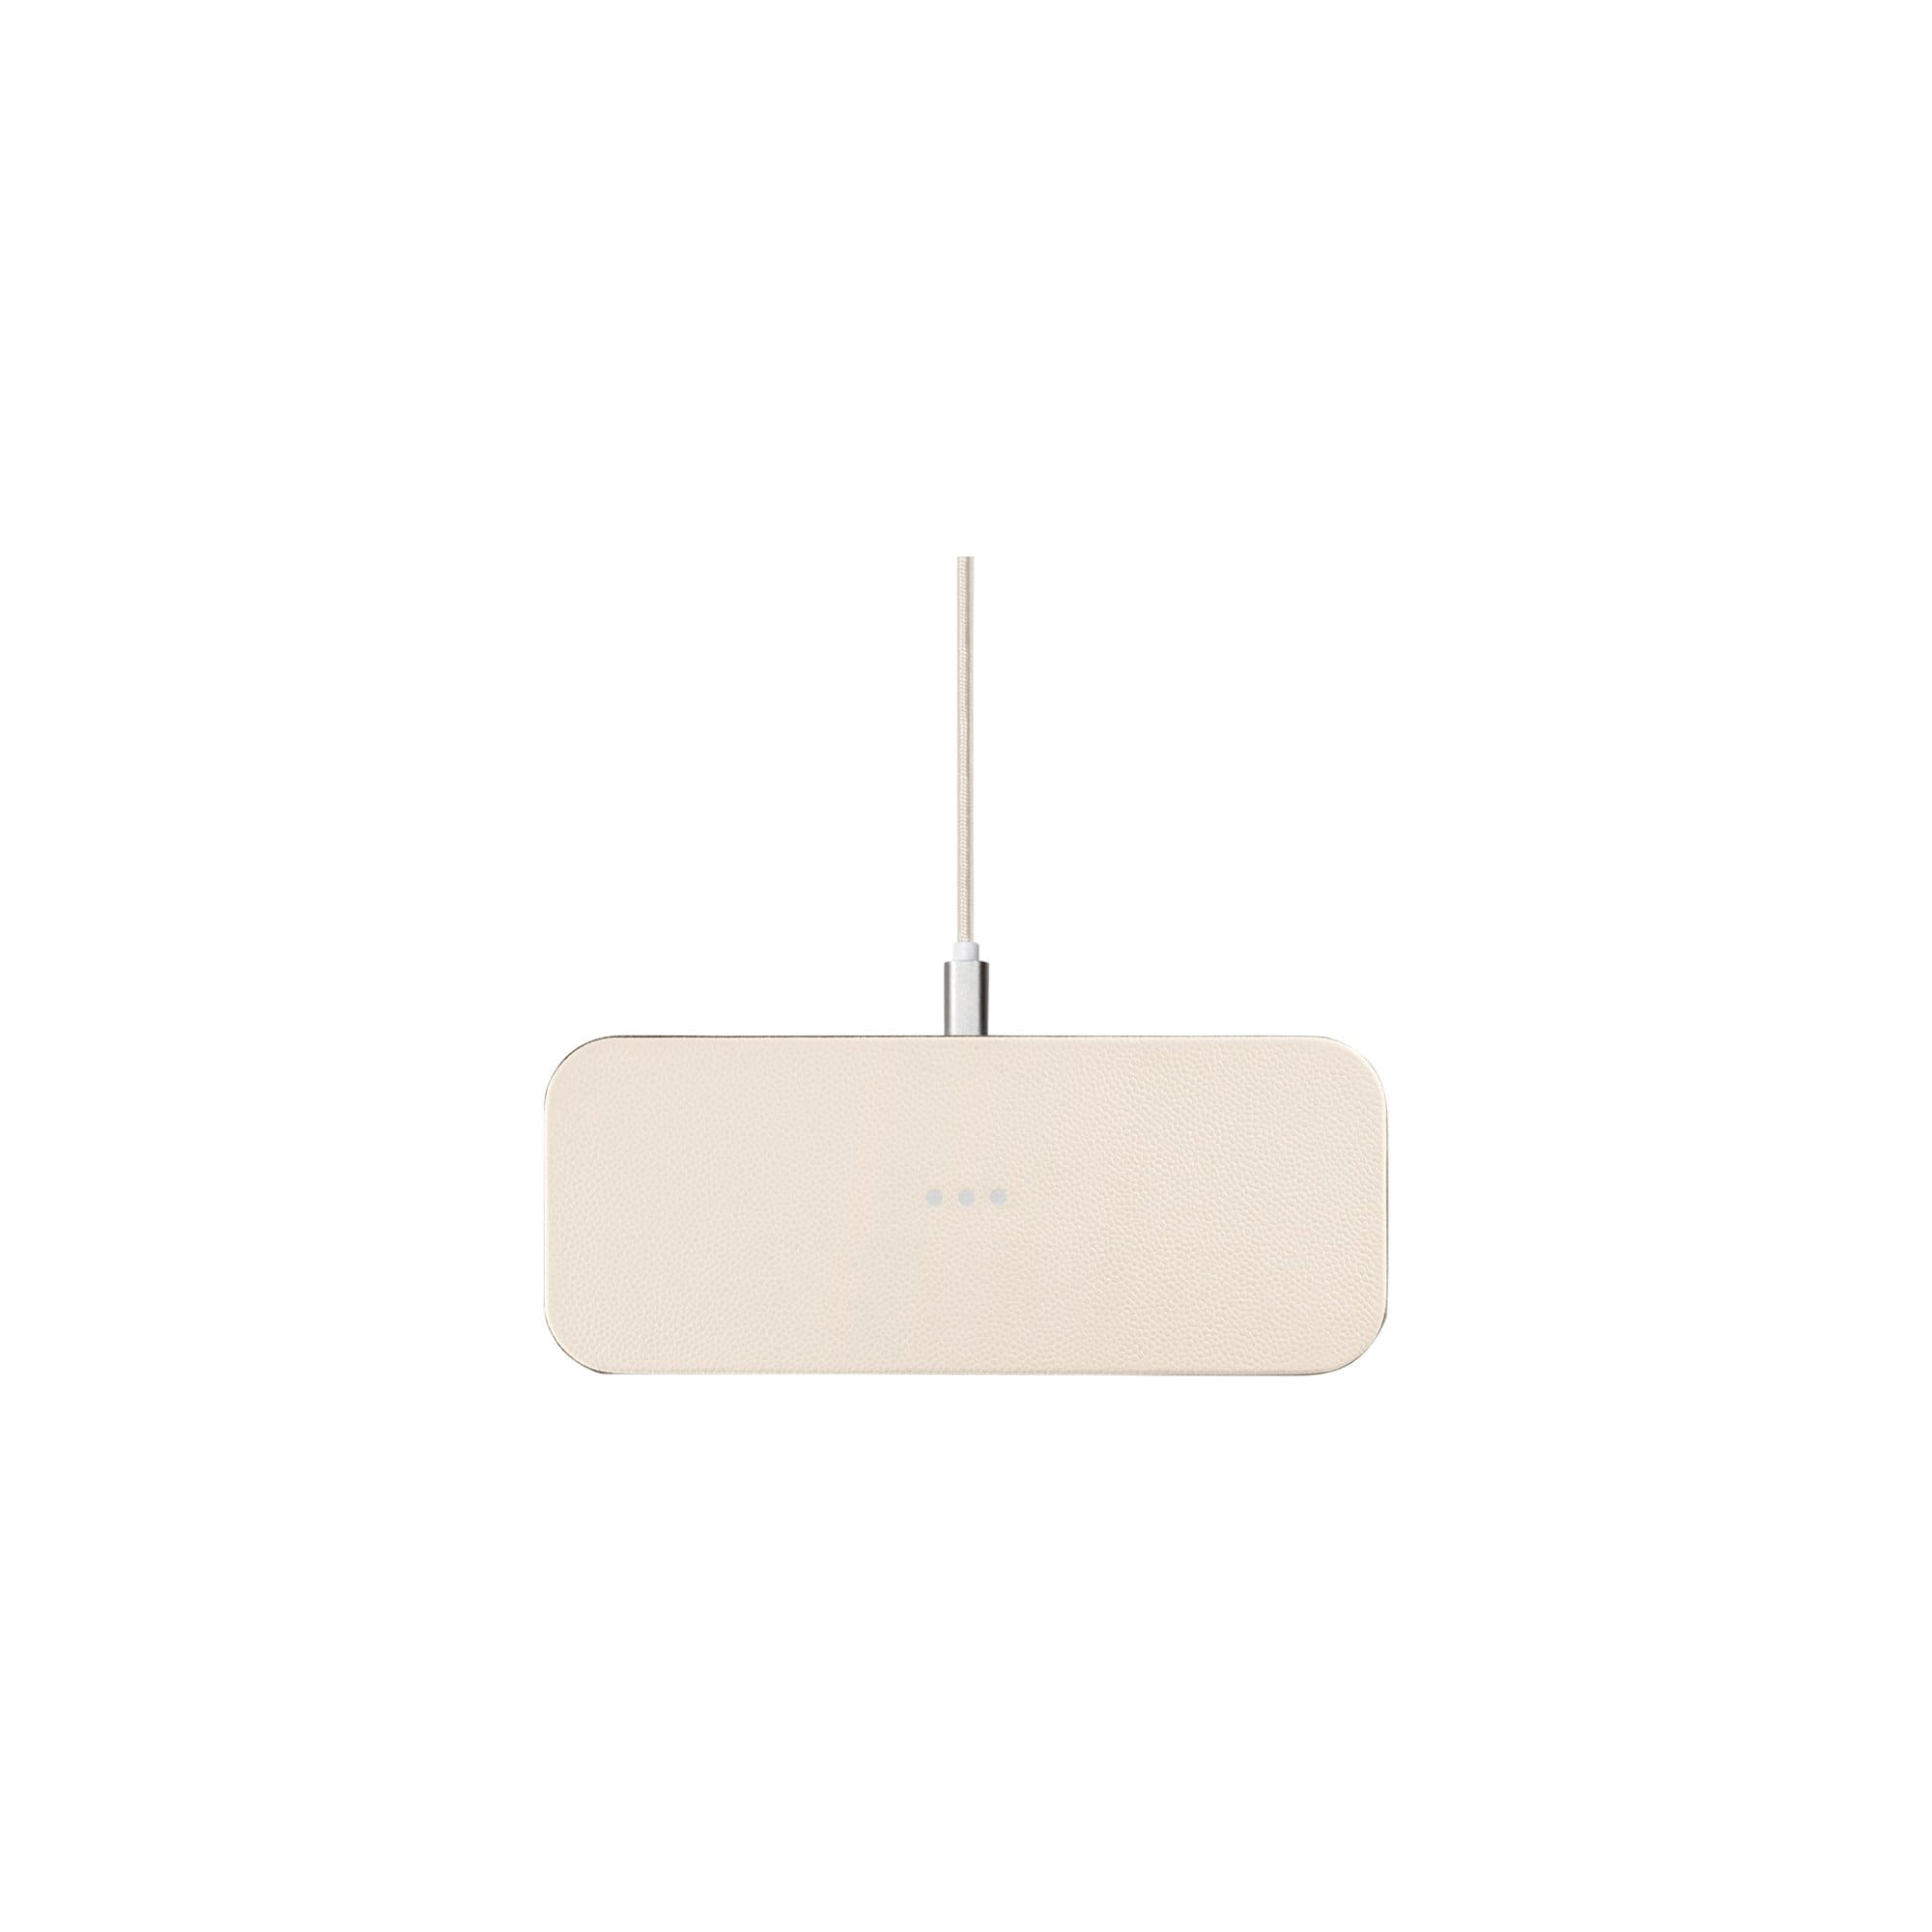 CATCH:2 Wireless Charger in Bone